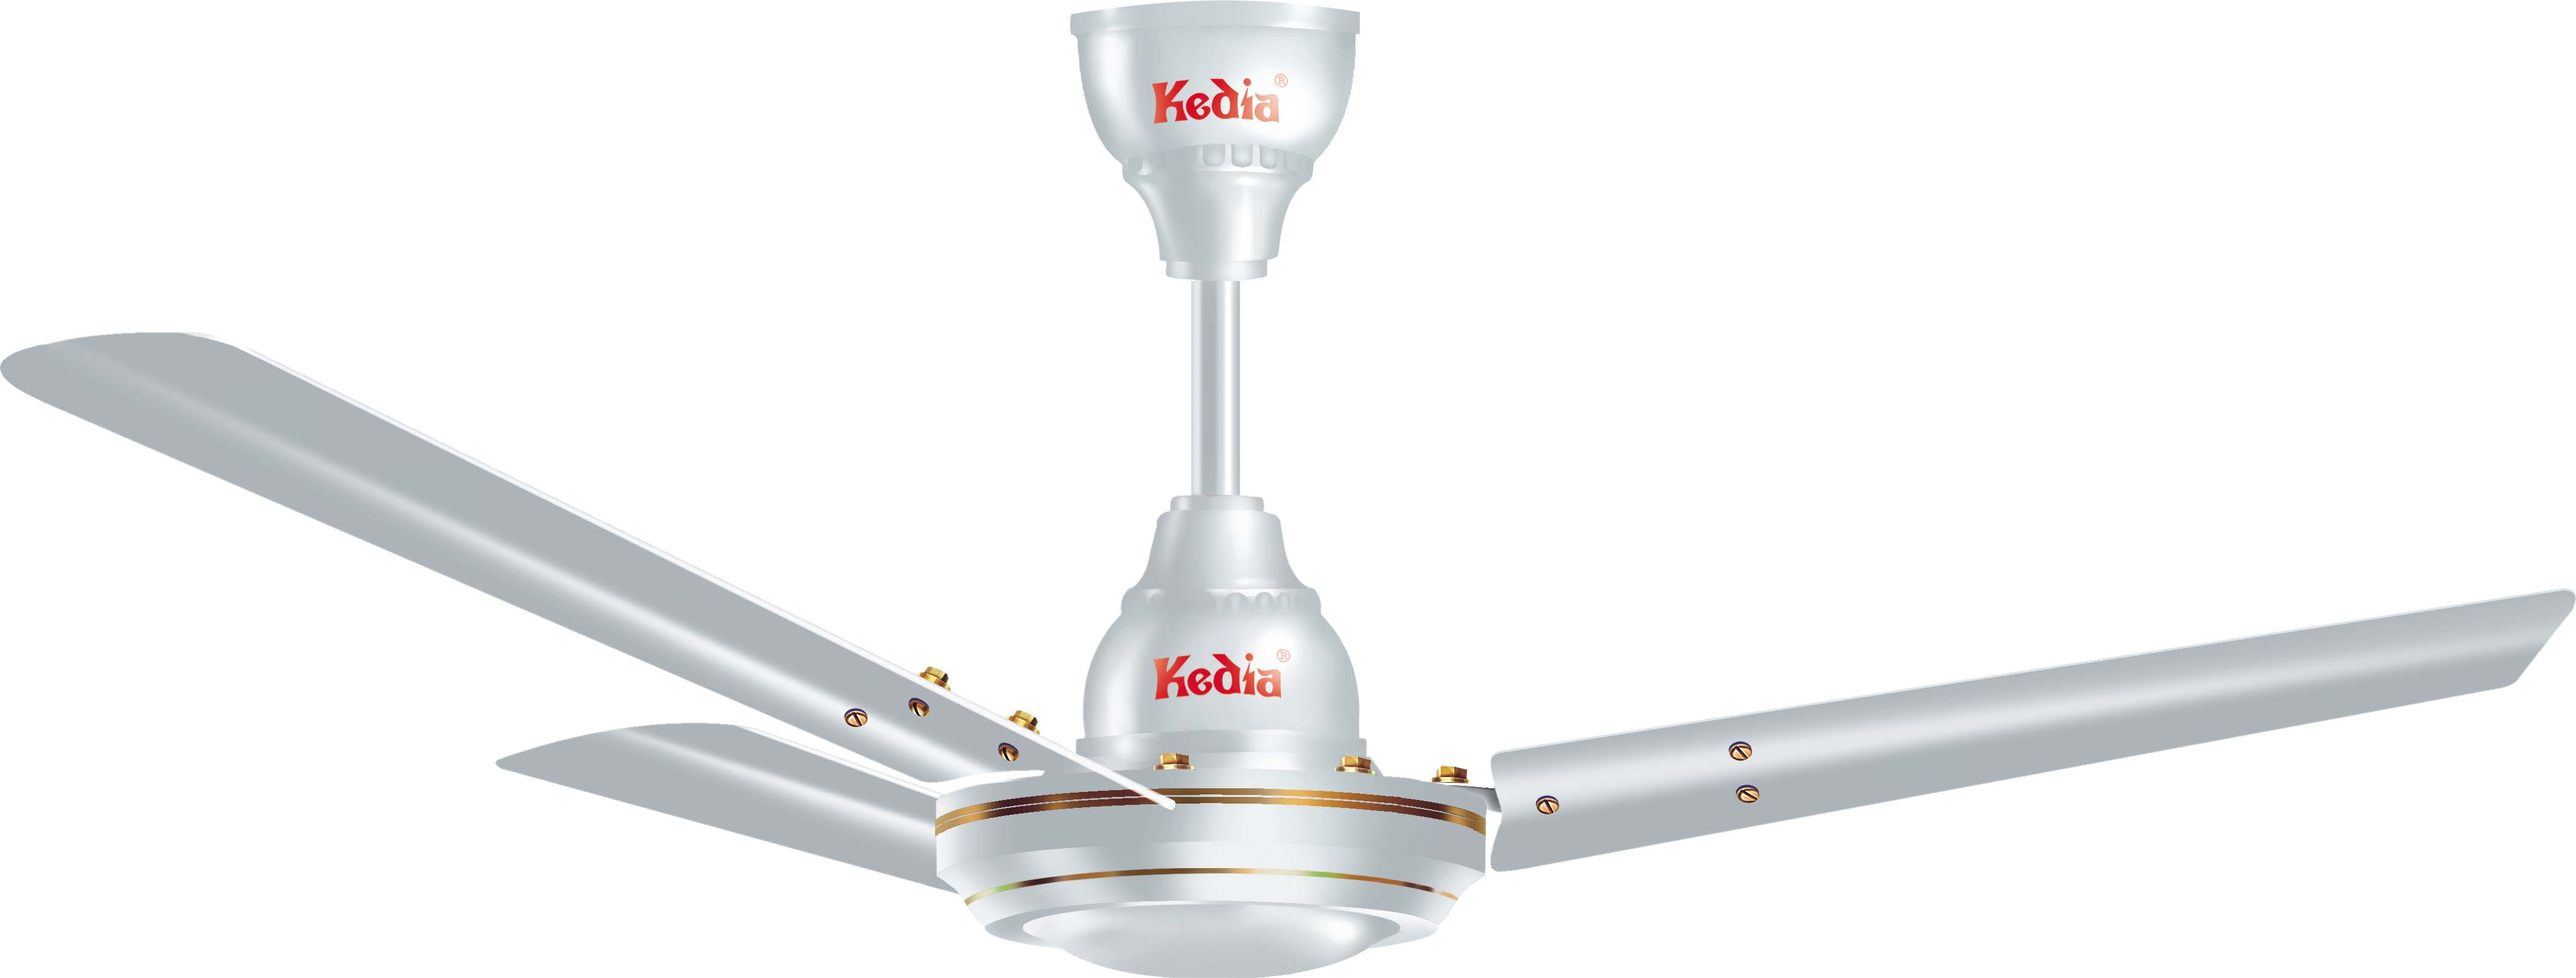 Kdk ceiling fan regulator good what is ventilation with kdk ceiling best kedia ceiling fans view ceiling fans kedia fan product details from kedia electricals ltd on alibabacom with kdk ceiling fan regulator swarovskicordoba Choice Image